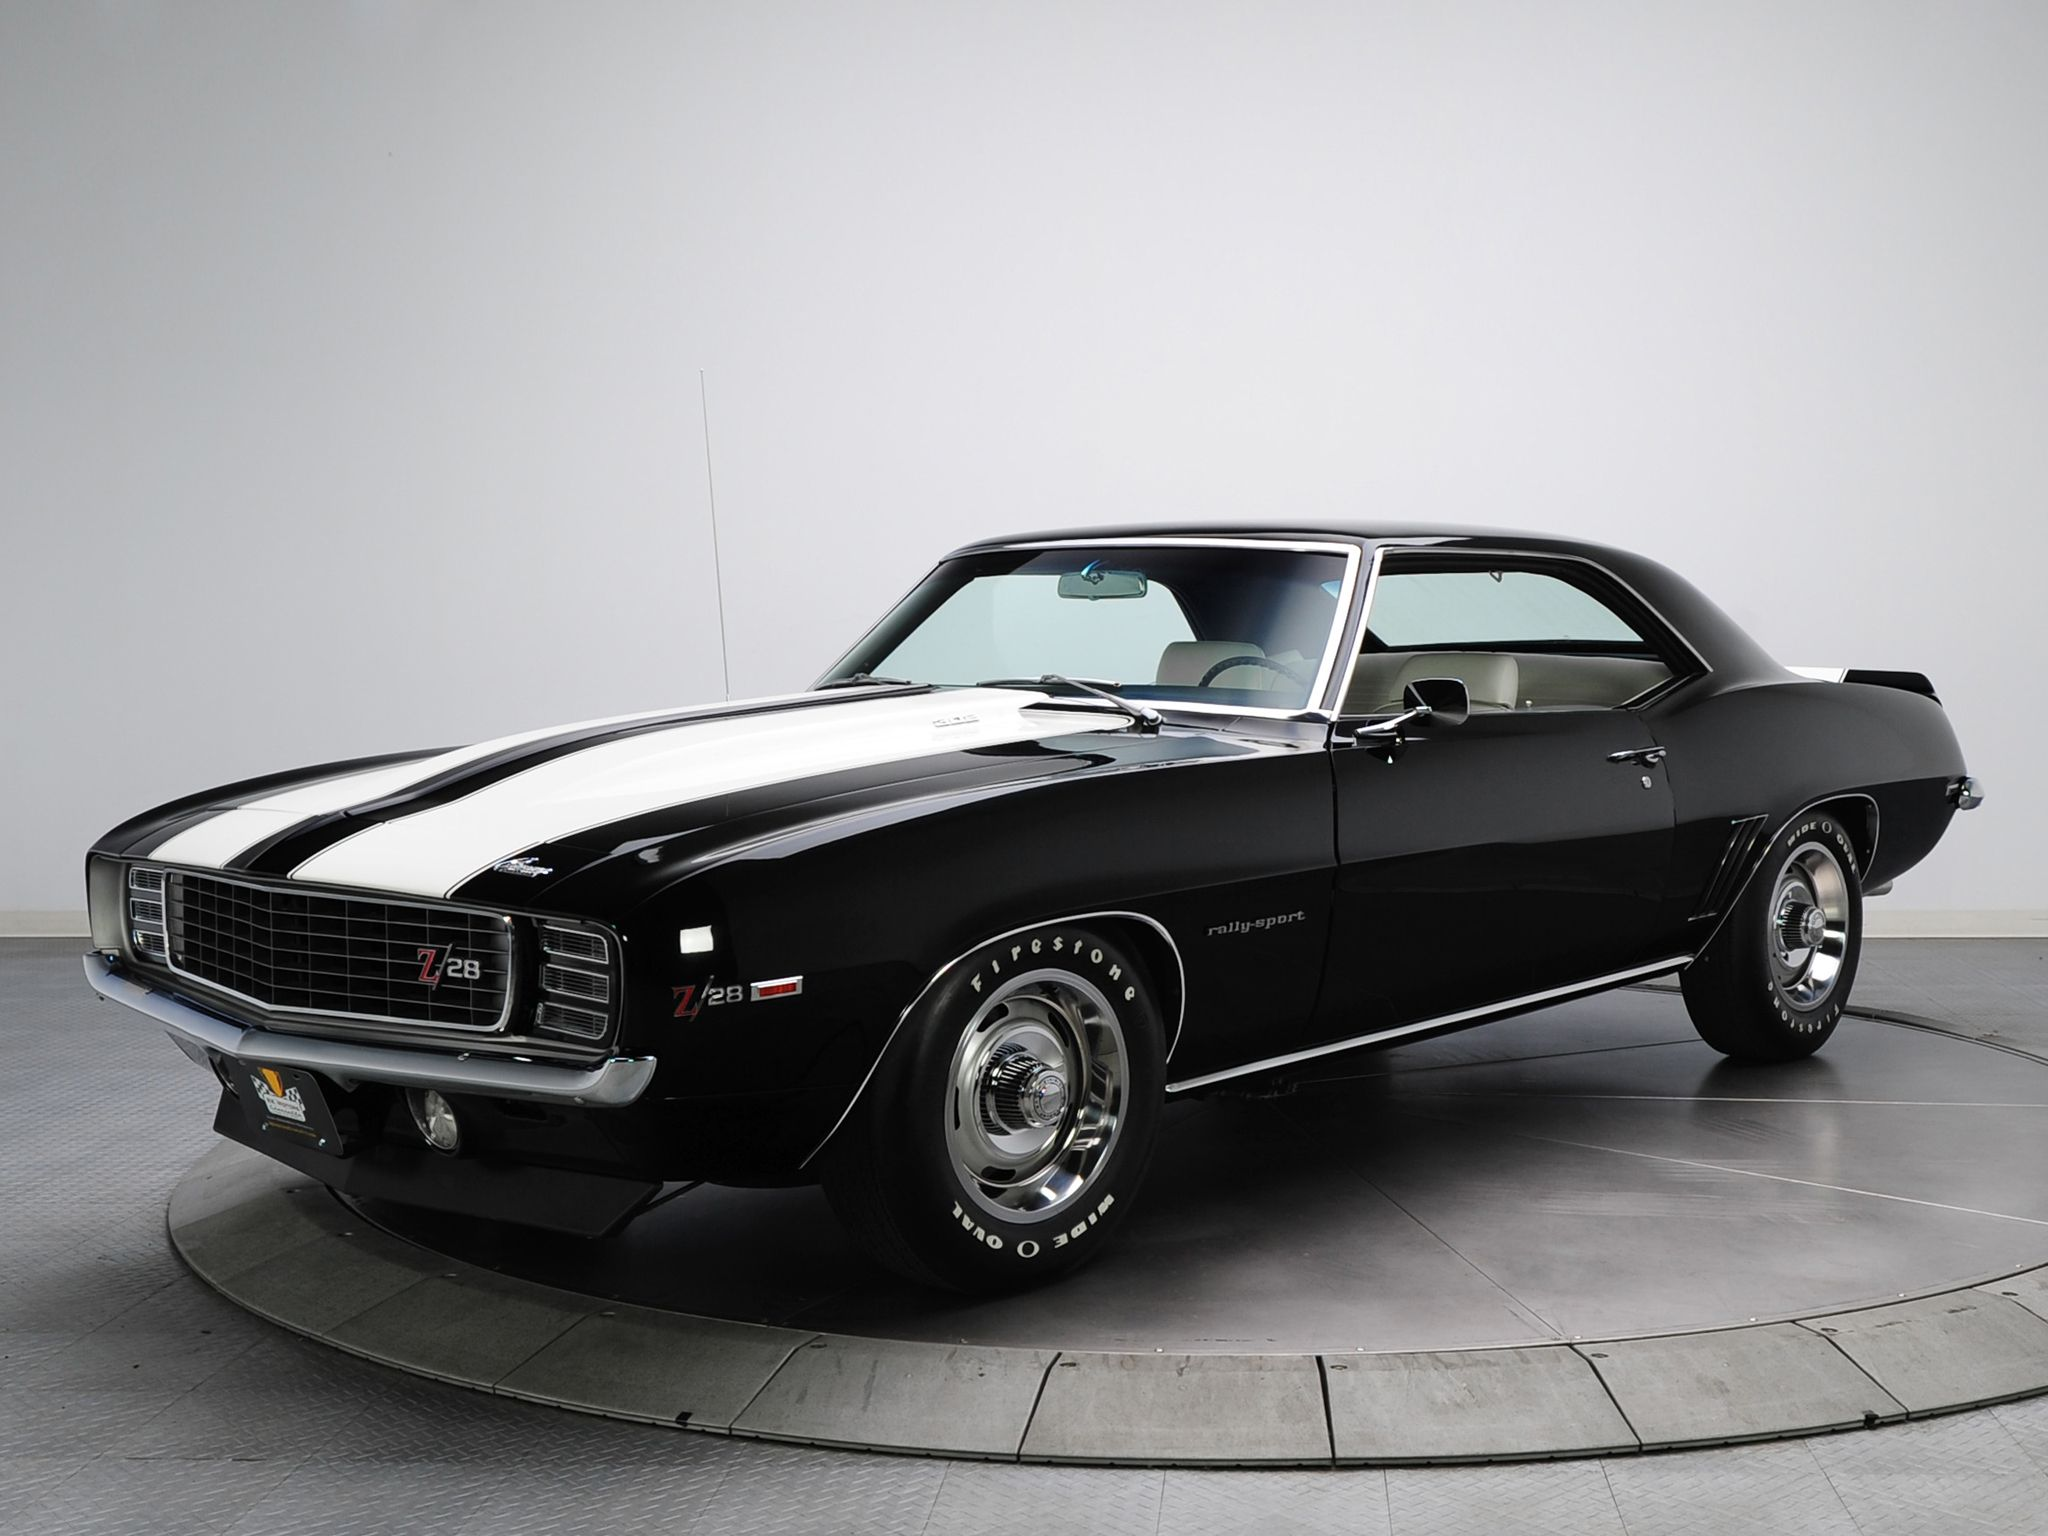 Chevy Camaro Classic Cars Hd Desktop Wallpaper Widescreen